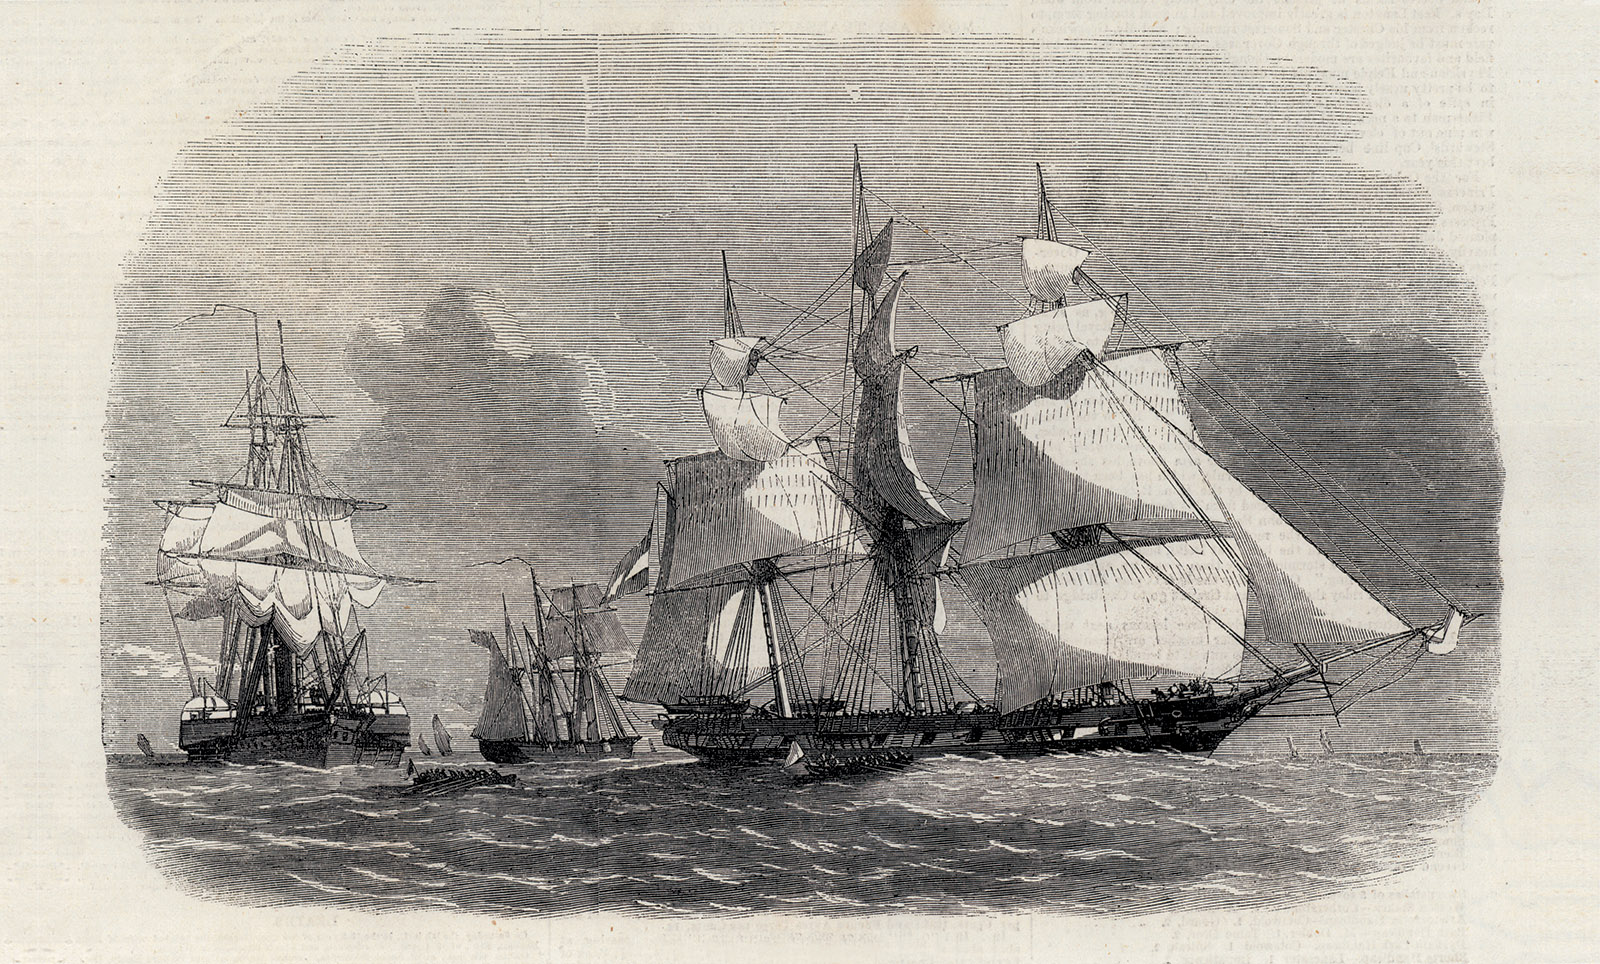 Capture of a Slaver off the Coast of Cuba; engraving from 1858